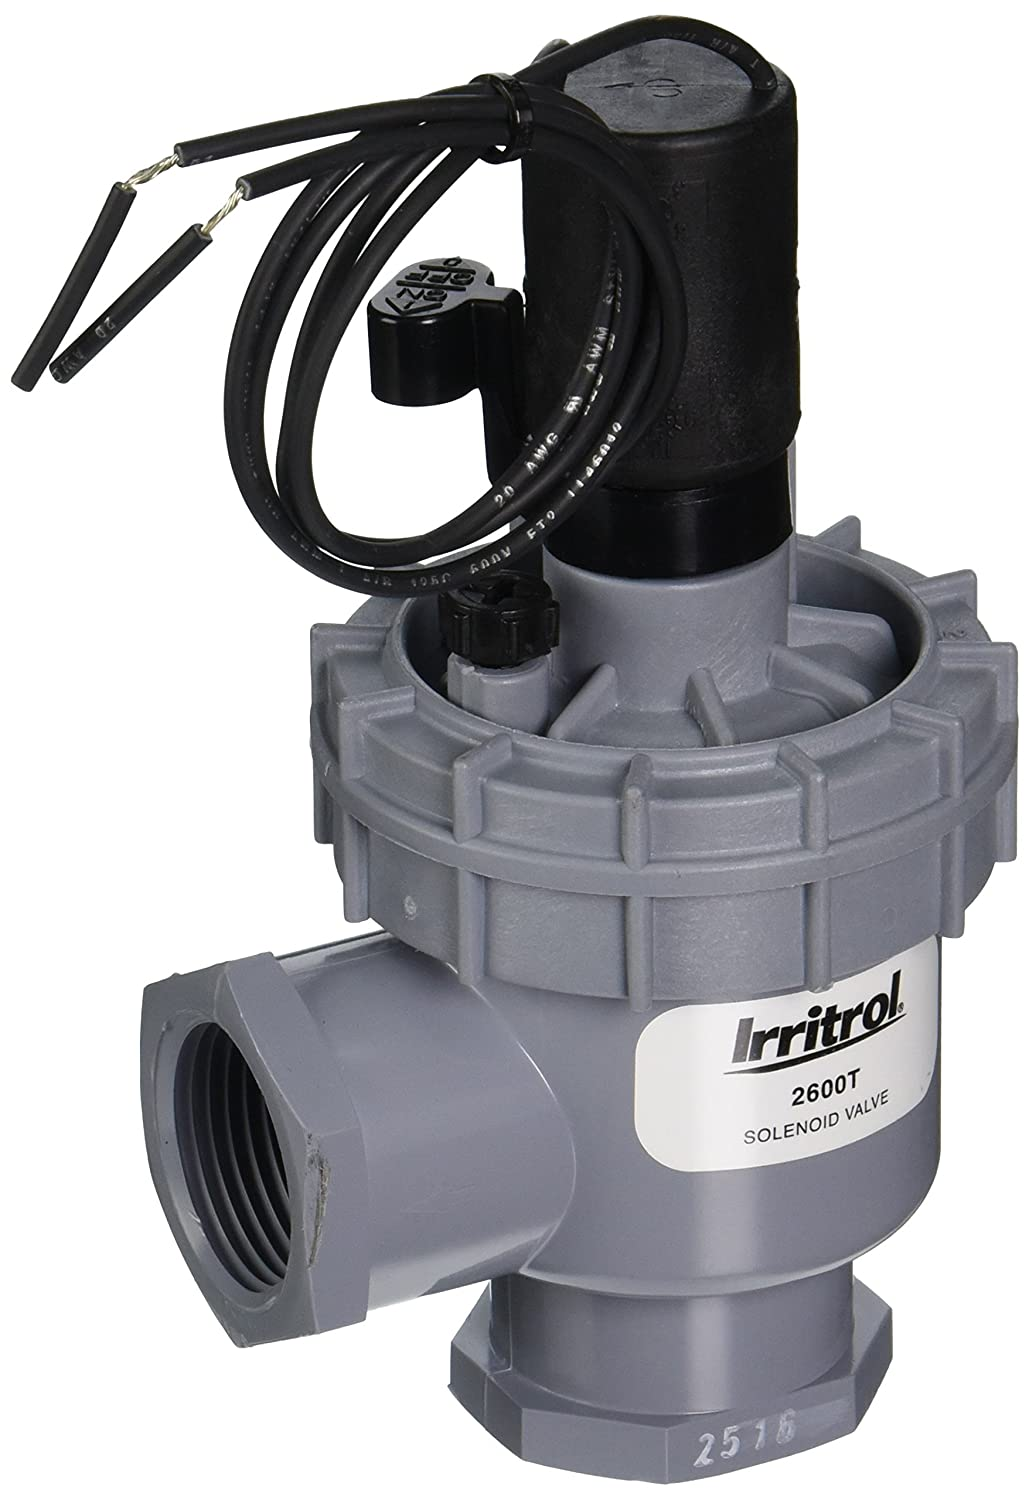 Irritrol 2600T Angle Valve with NPT Threaded Connection, 1'